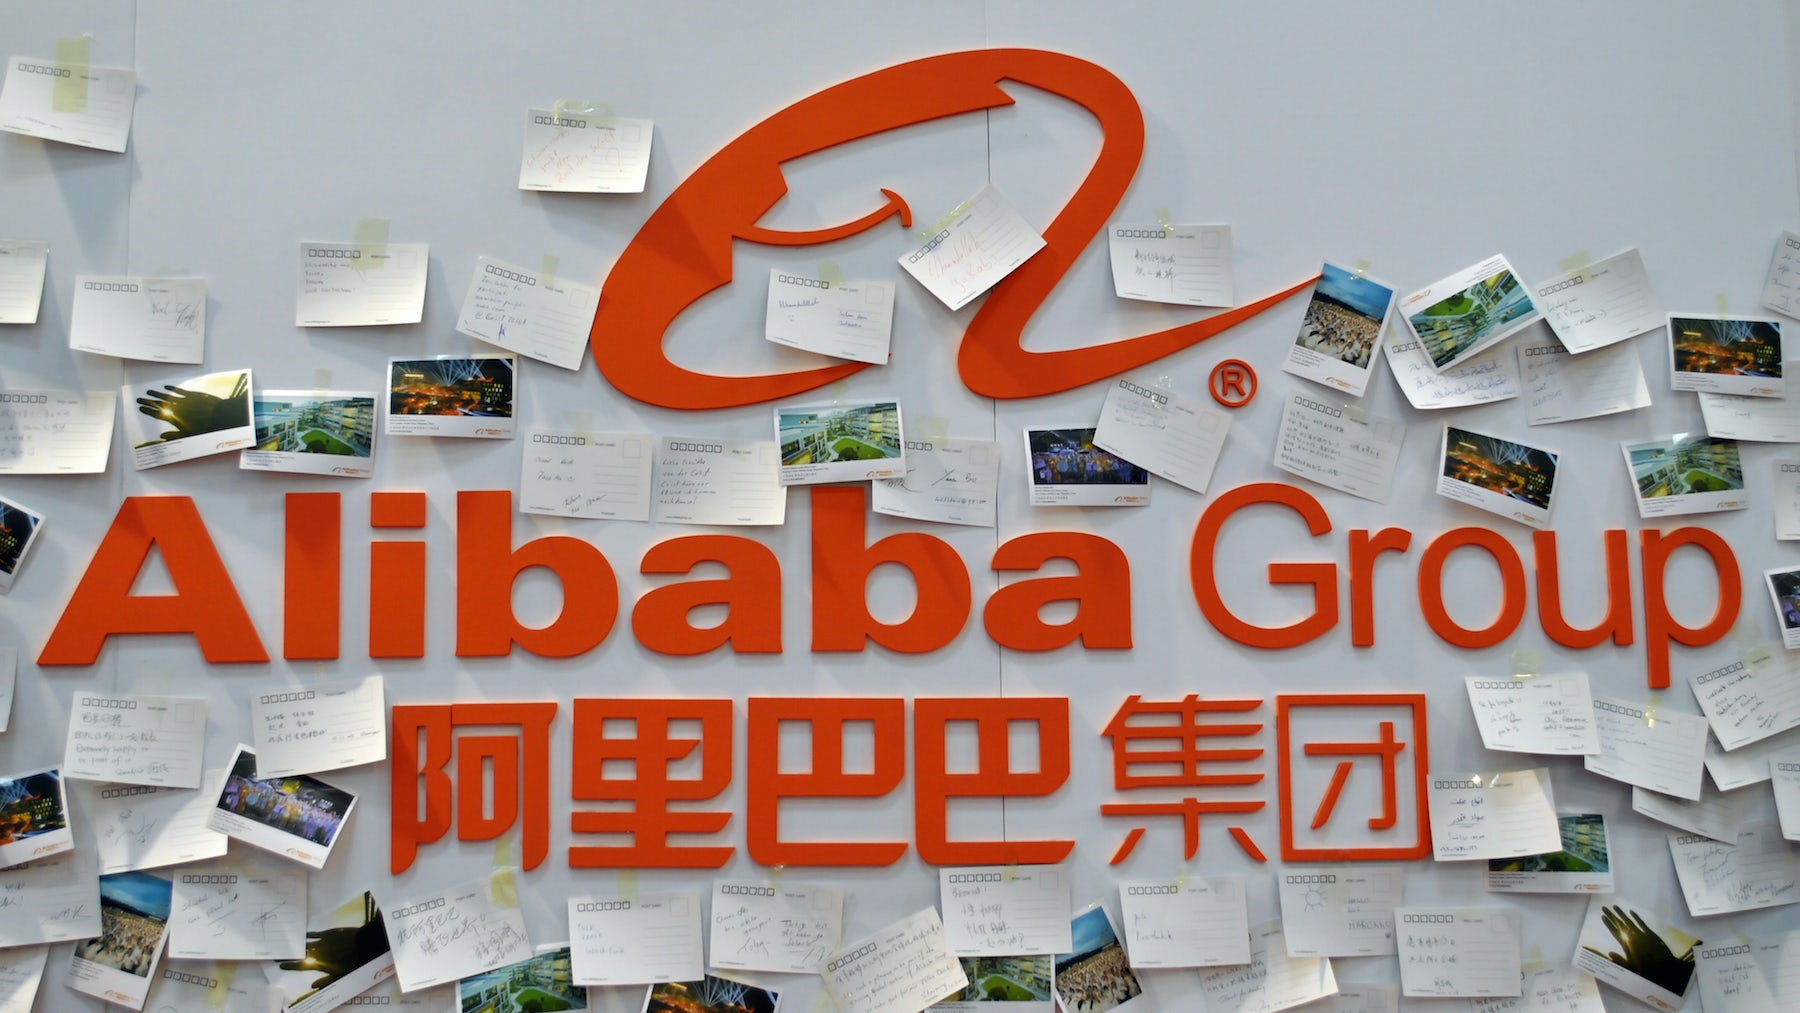 Alibaba Group | Source: Shutterstock